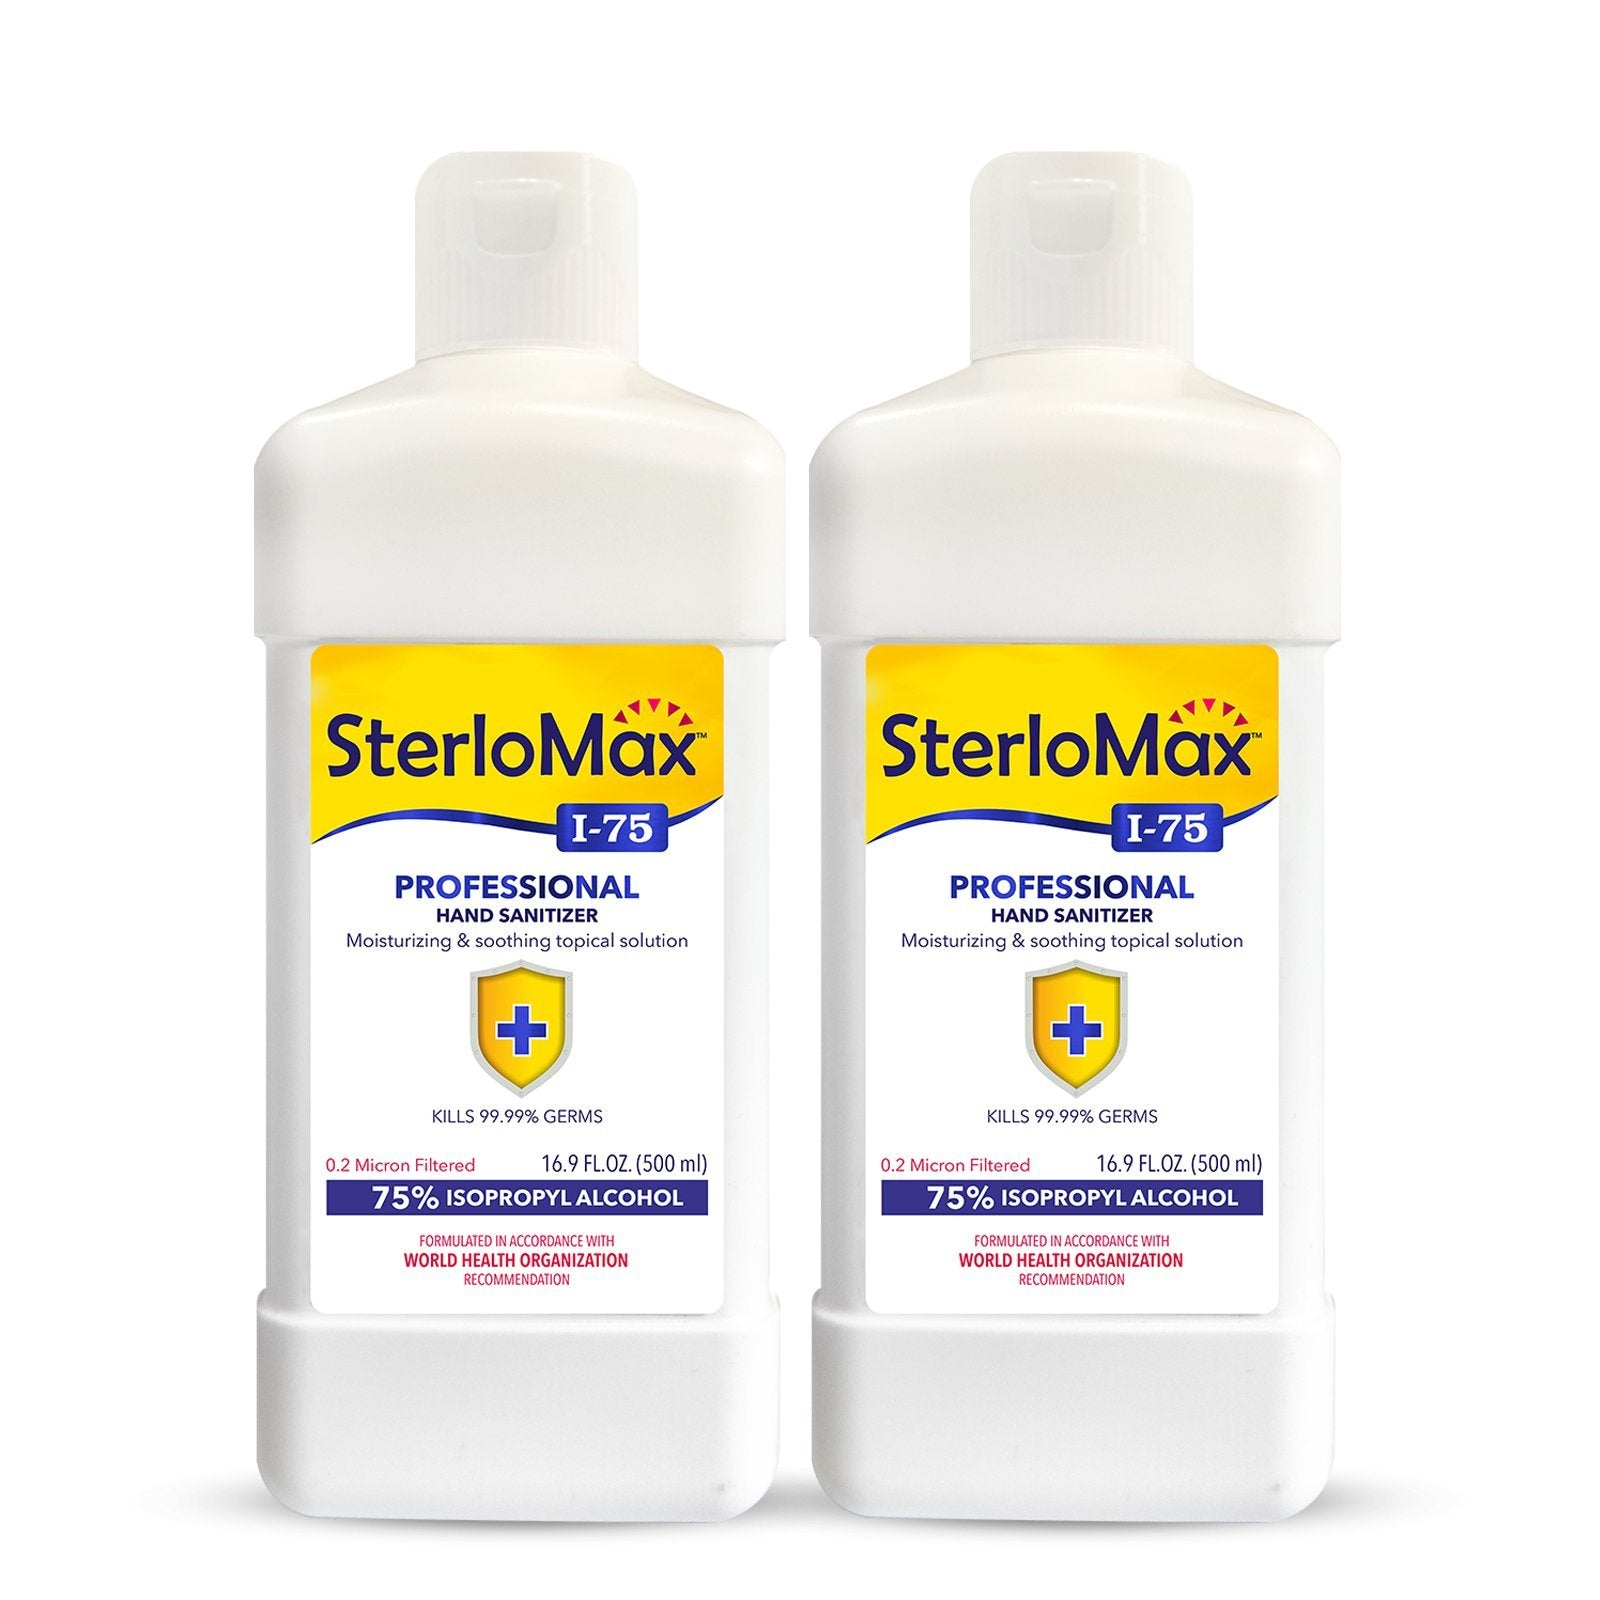 SterloMax I-75 Professional - 75% Isopropyl Alcohol-based Hand Rub Sanitizer and Disinfectant. 17 Fl Oz (500 ml). Pack of 2